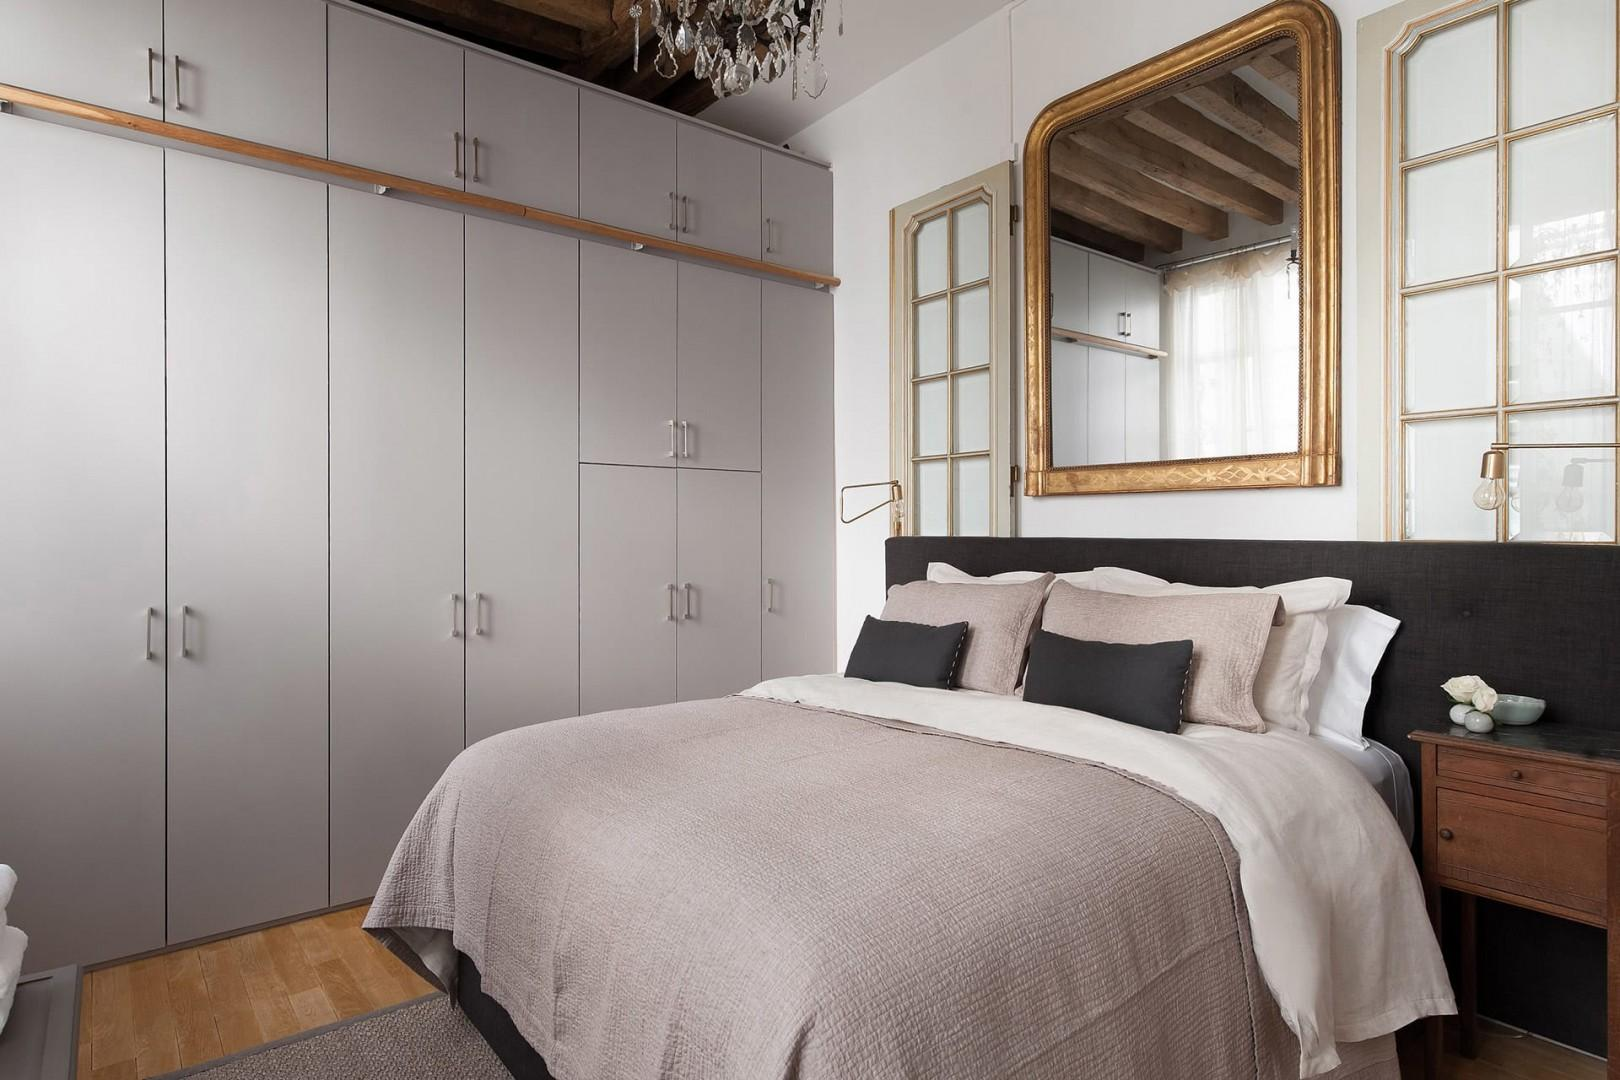 The bedroom features a large bed and a full wall of built-in closets.